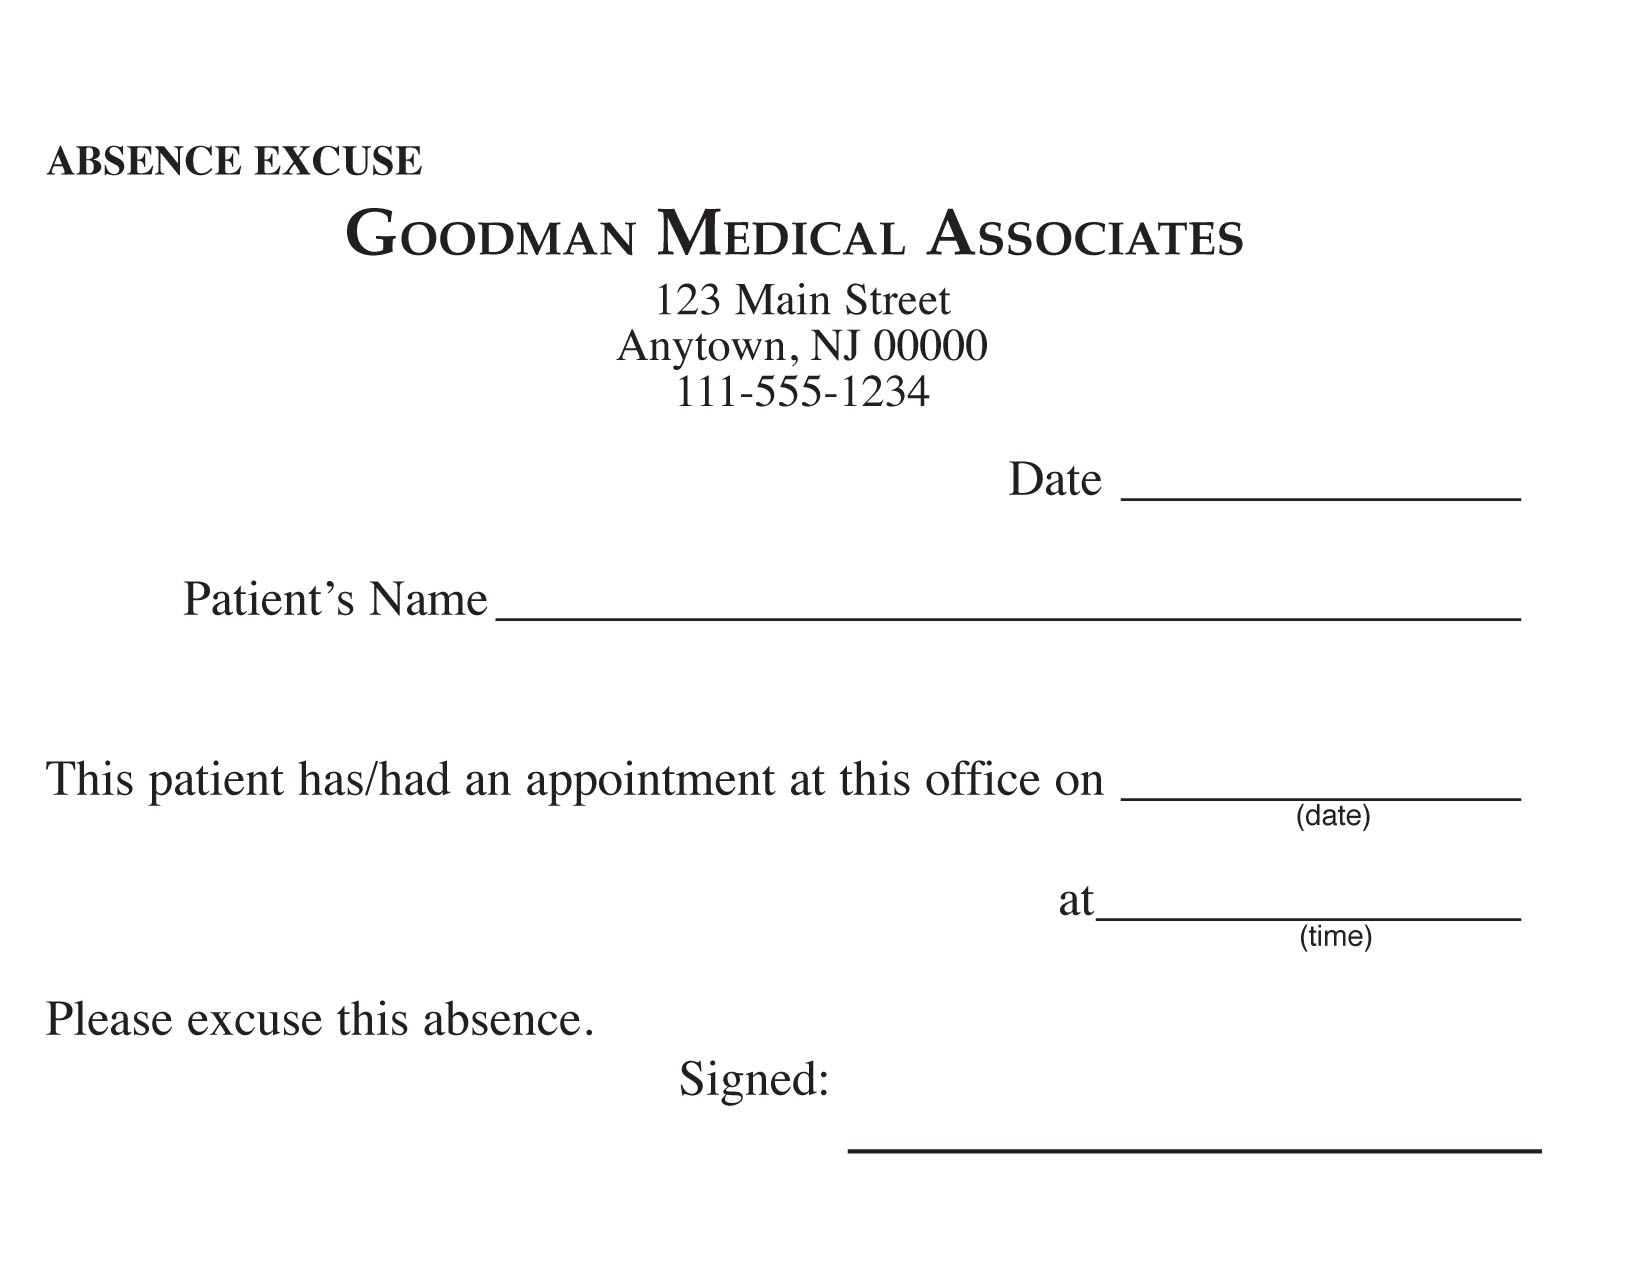 excuse letter for work absence best almarhum excuse letter for work absence absence excuse letter for school buzzle doctor excuse form doctors excuse